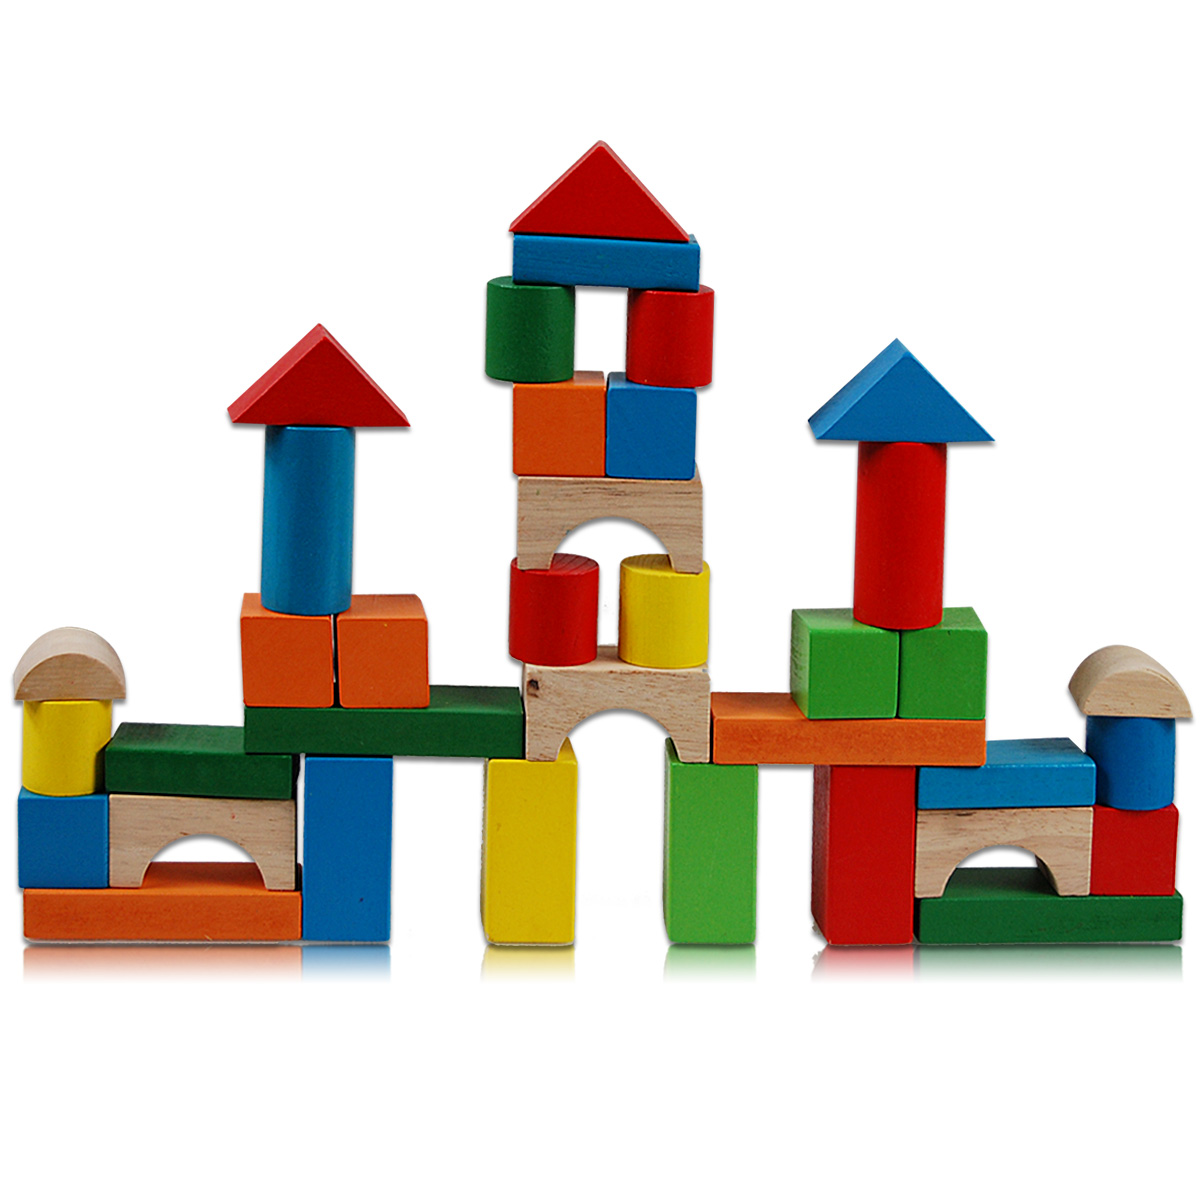 Toy Large Wooden Blocks 55